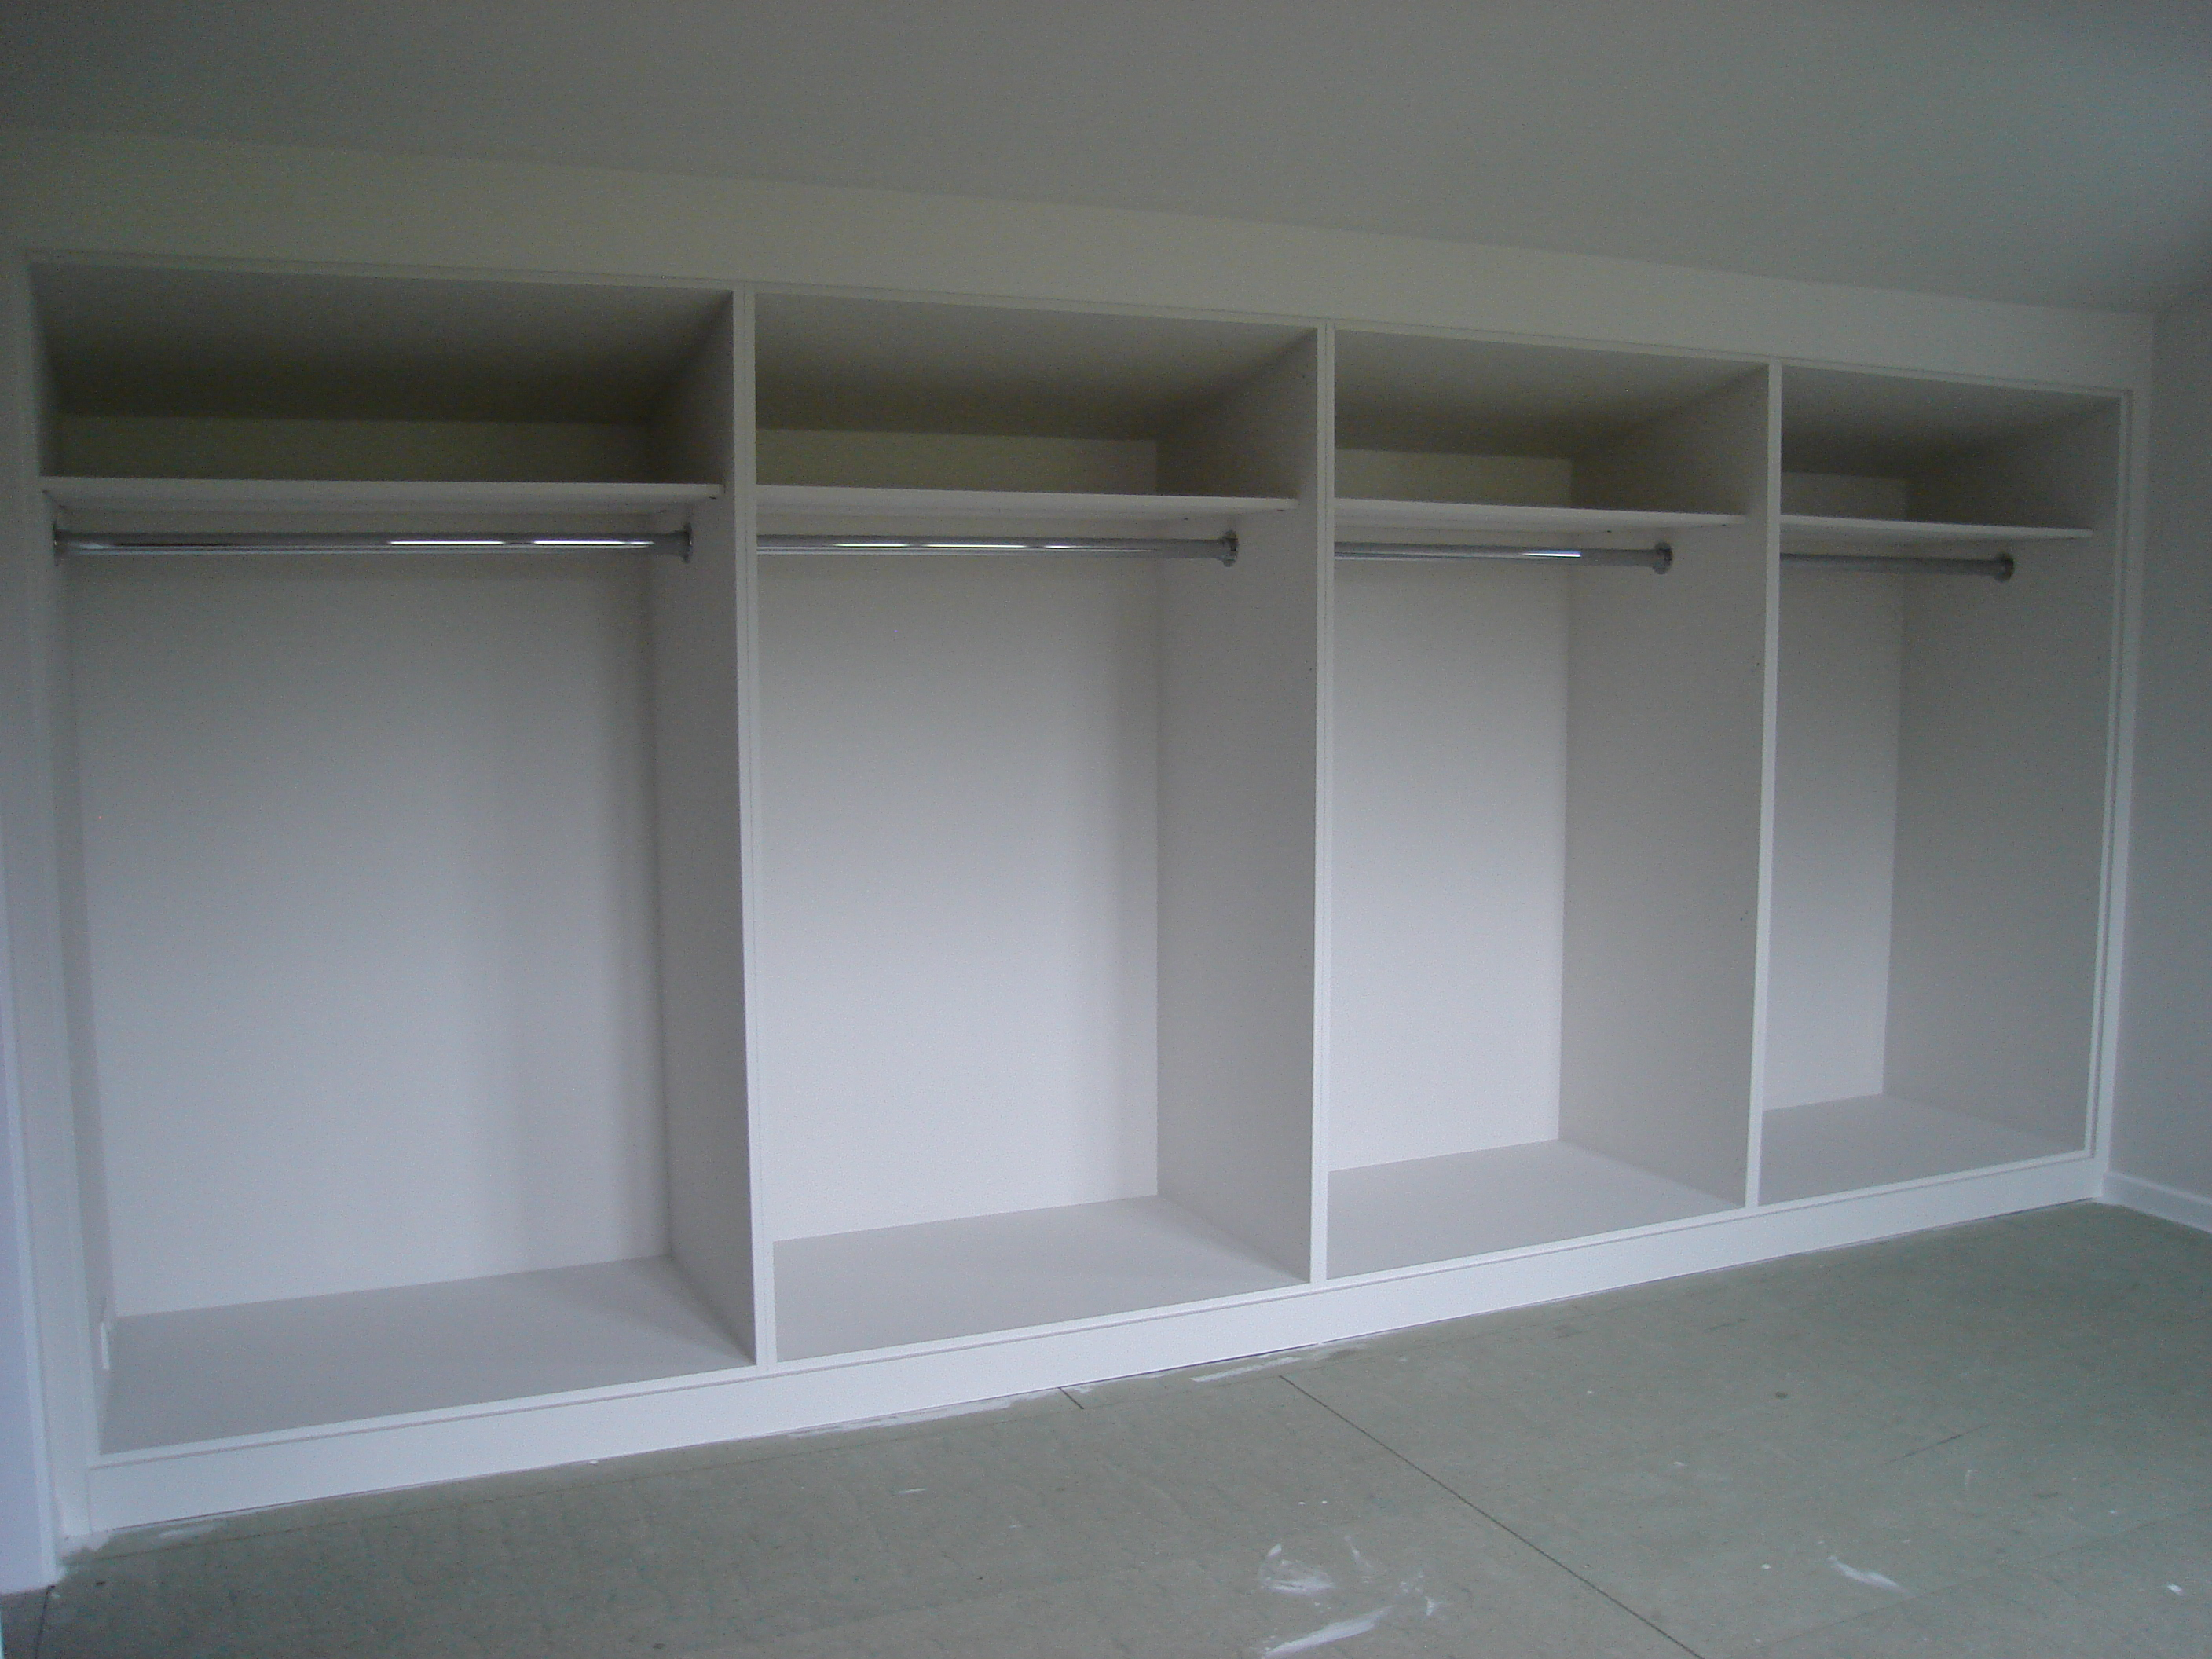 Diy wardrobes information centre online wardrobe design and ordering service for the ambitious Build your own bedroom wardrobes